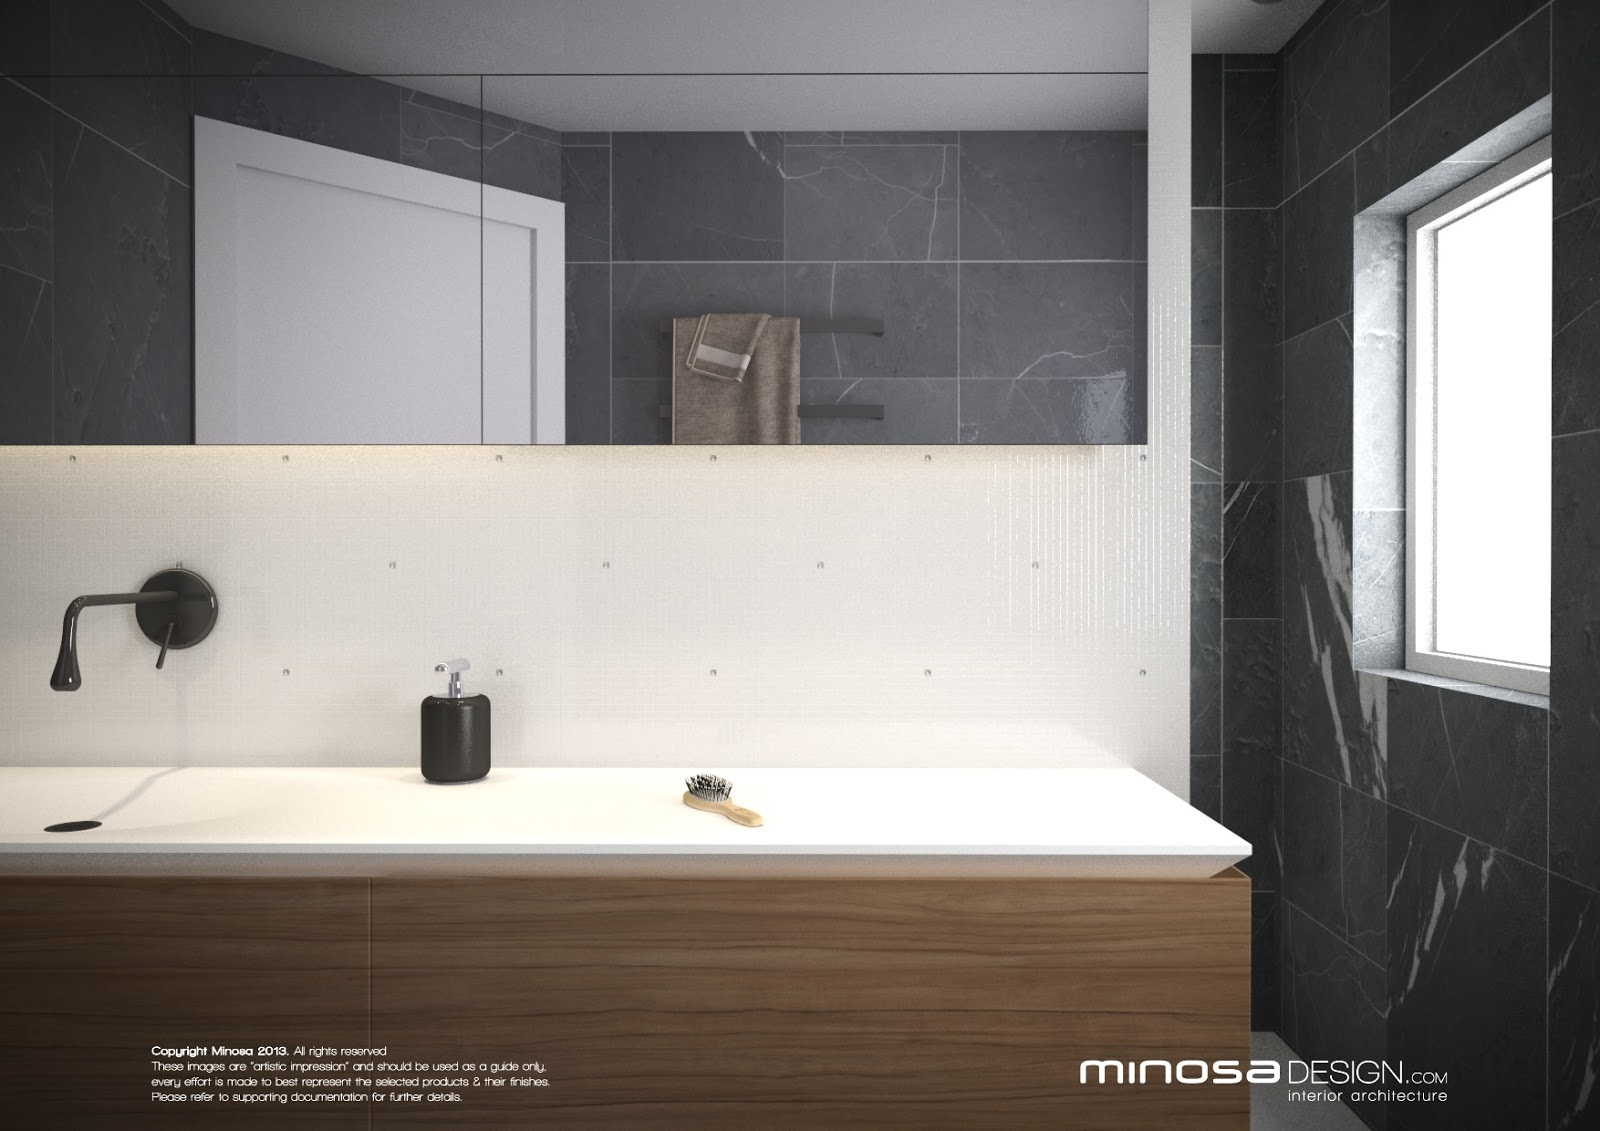 Minosa: Small modern bathroom to share